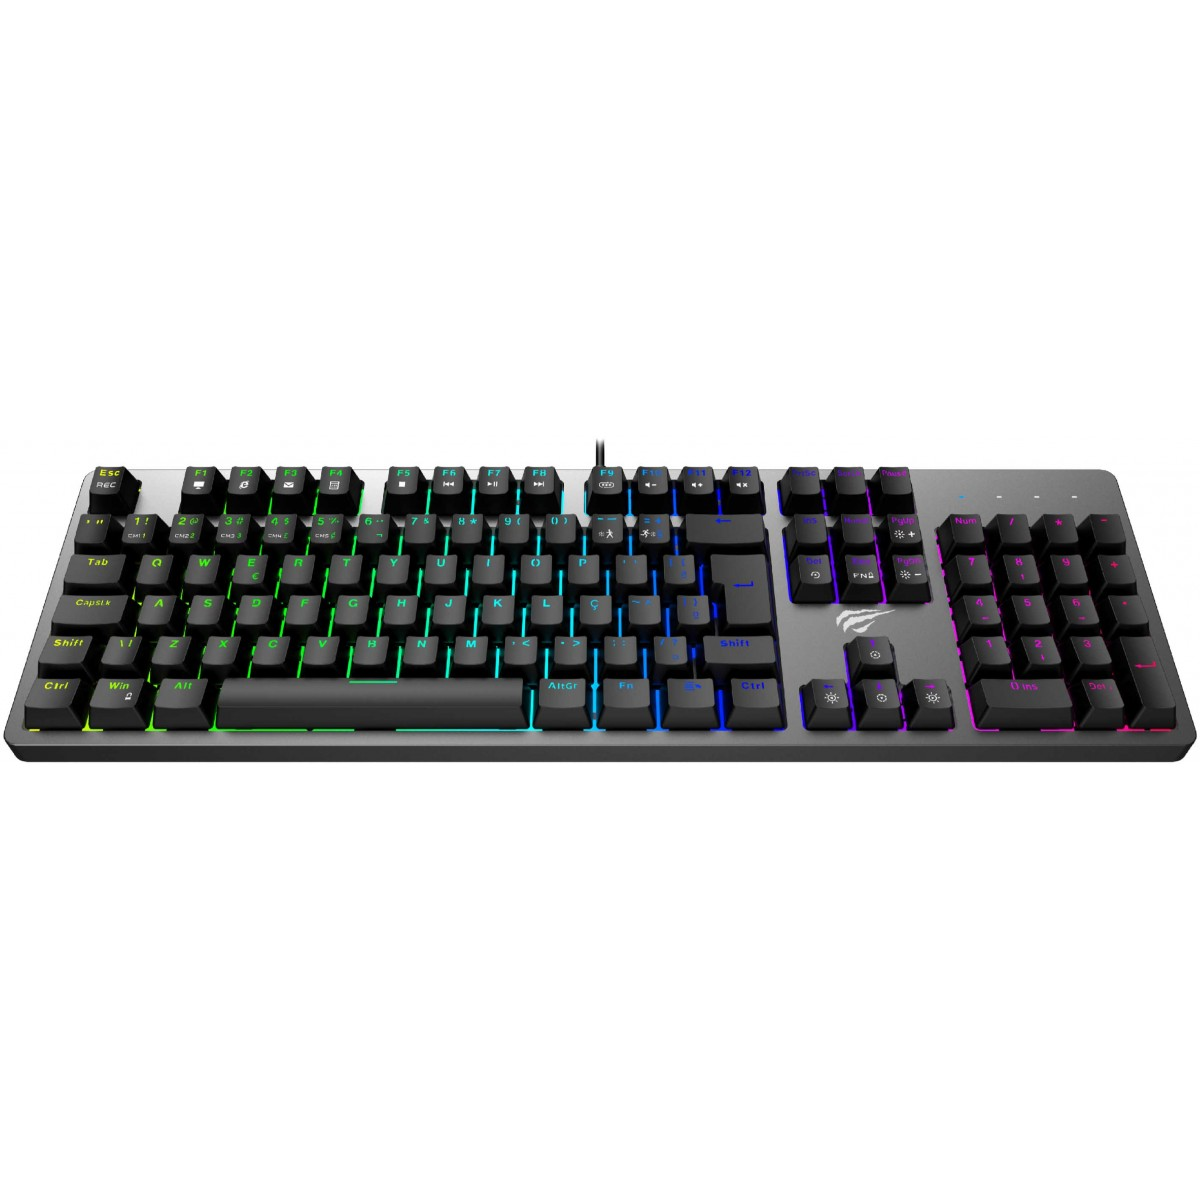 Teclado Mecânico Havit RGB, Switch Blue, ABNT-2, Black, KB492L